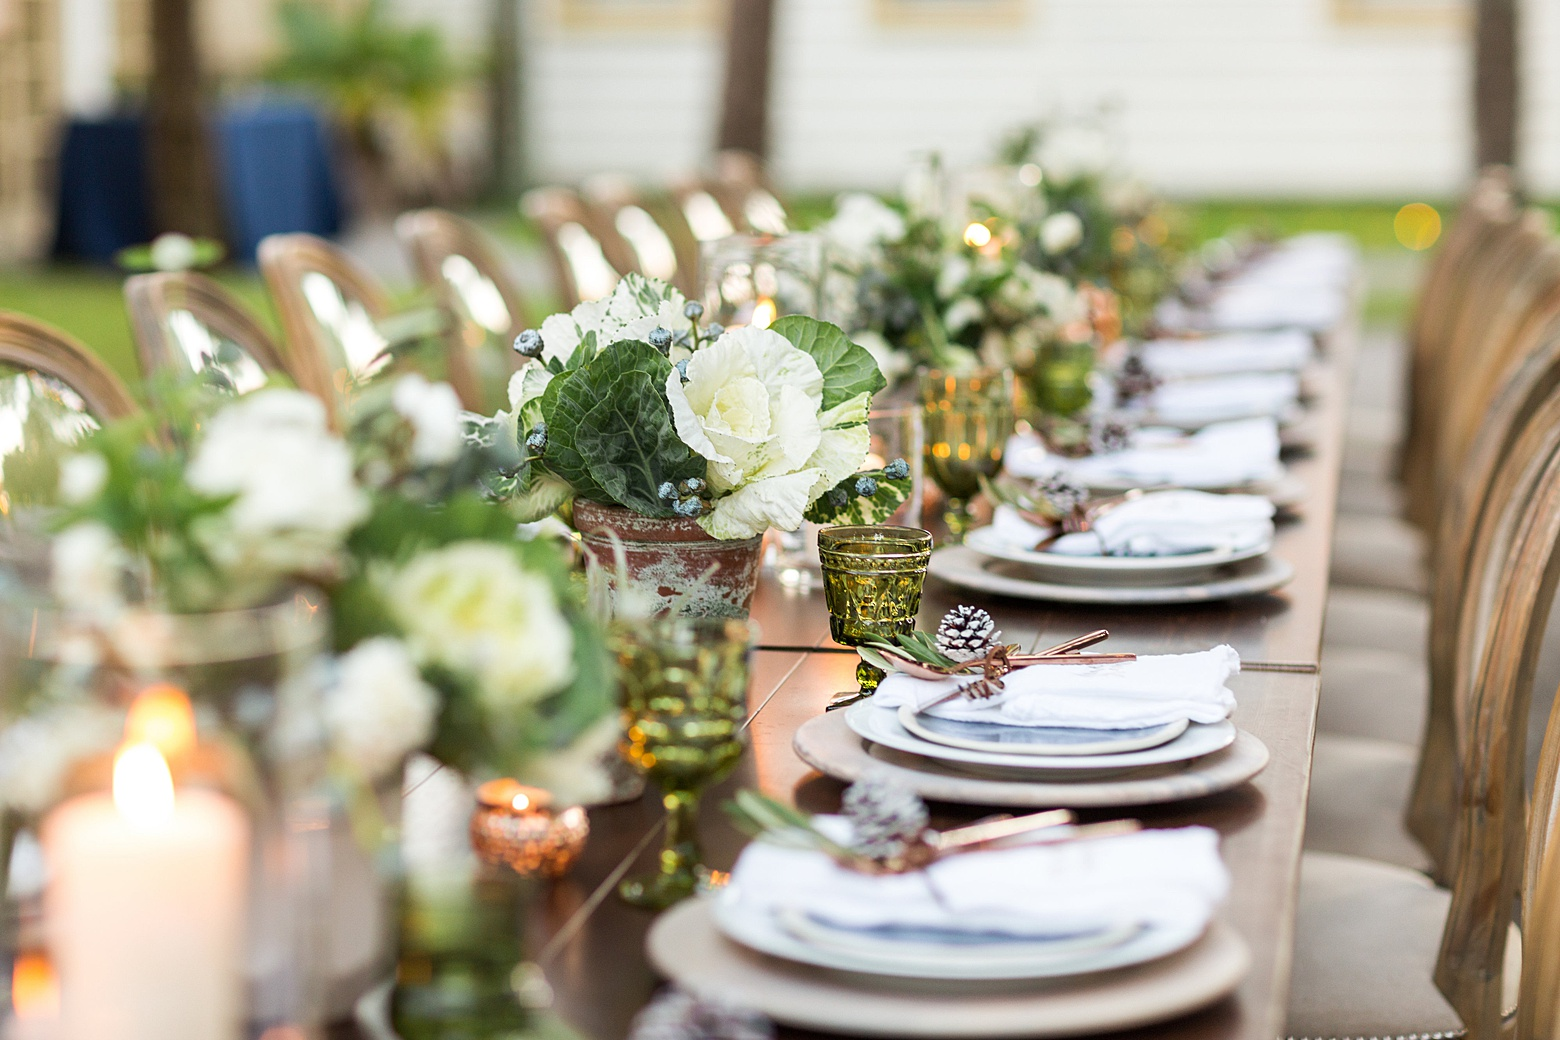 The Creative Entrepreneur's Guide on How to Organize a Styled Shoot